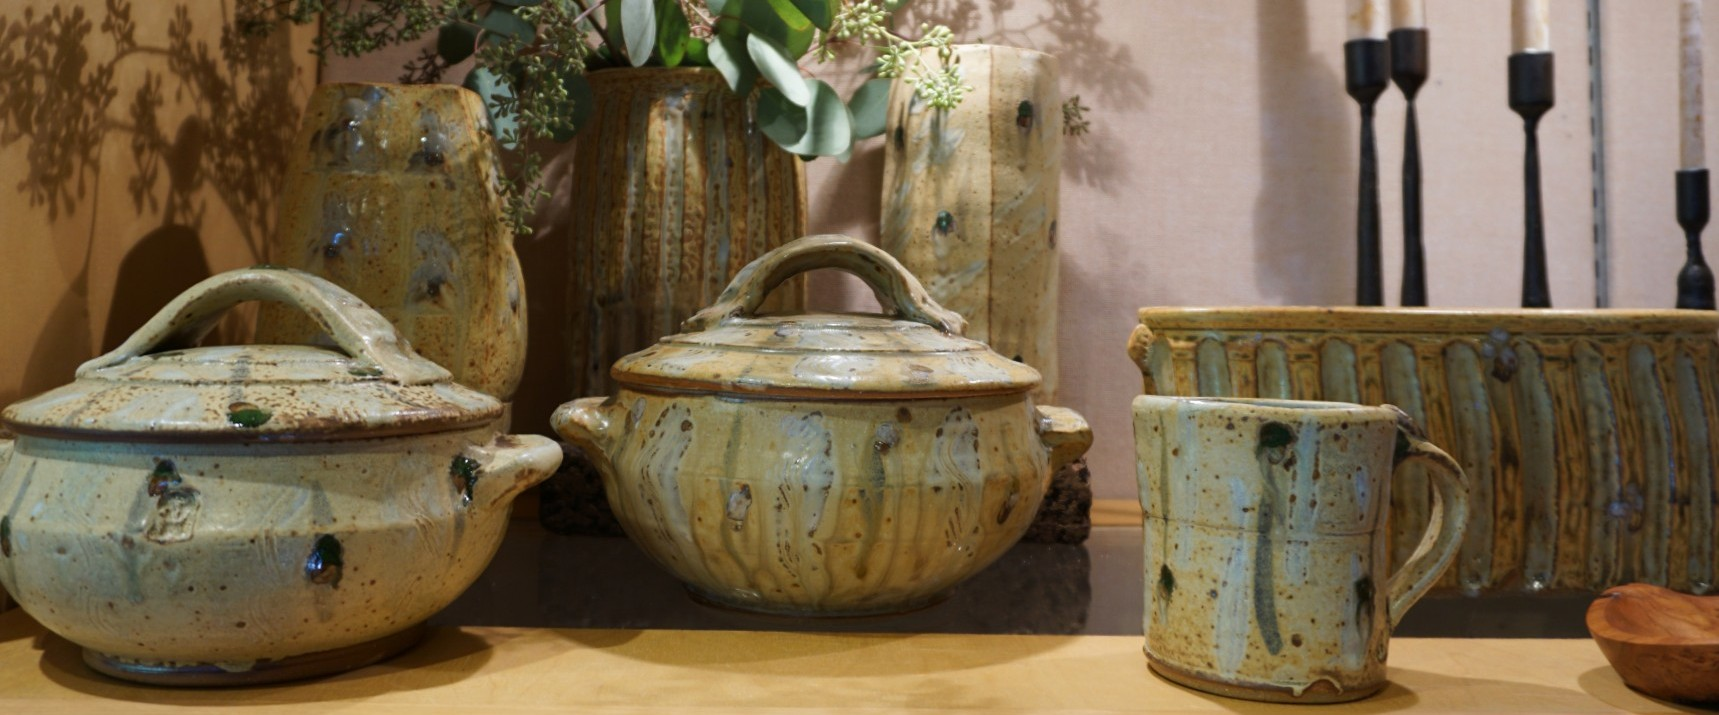 3_Landing_Page_Pottery_952